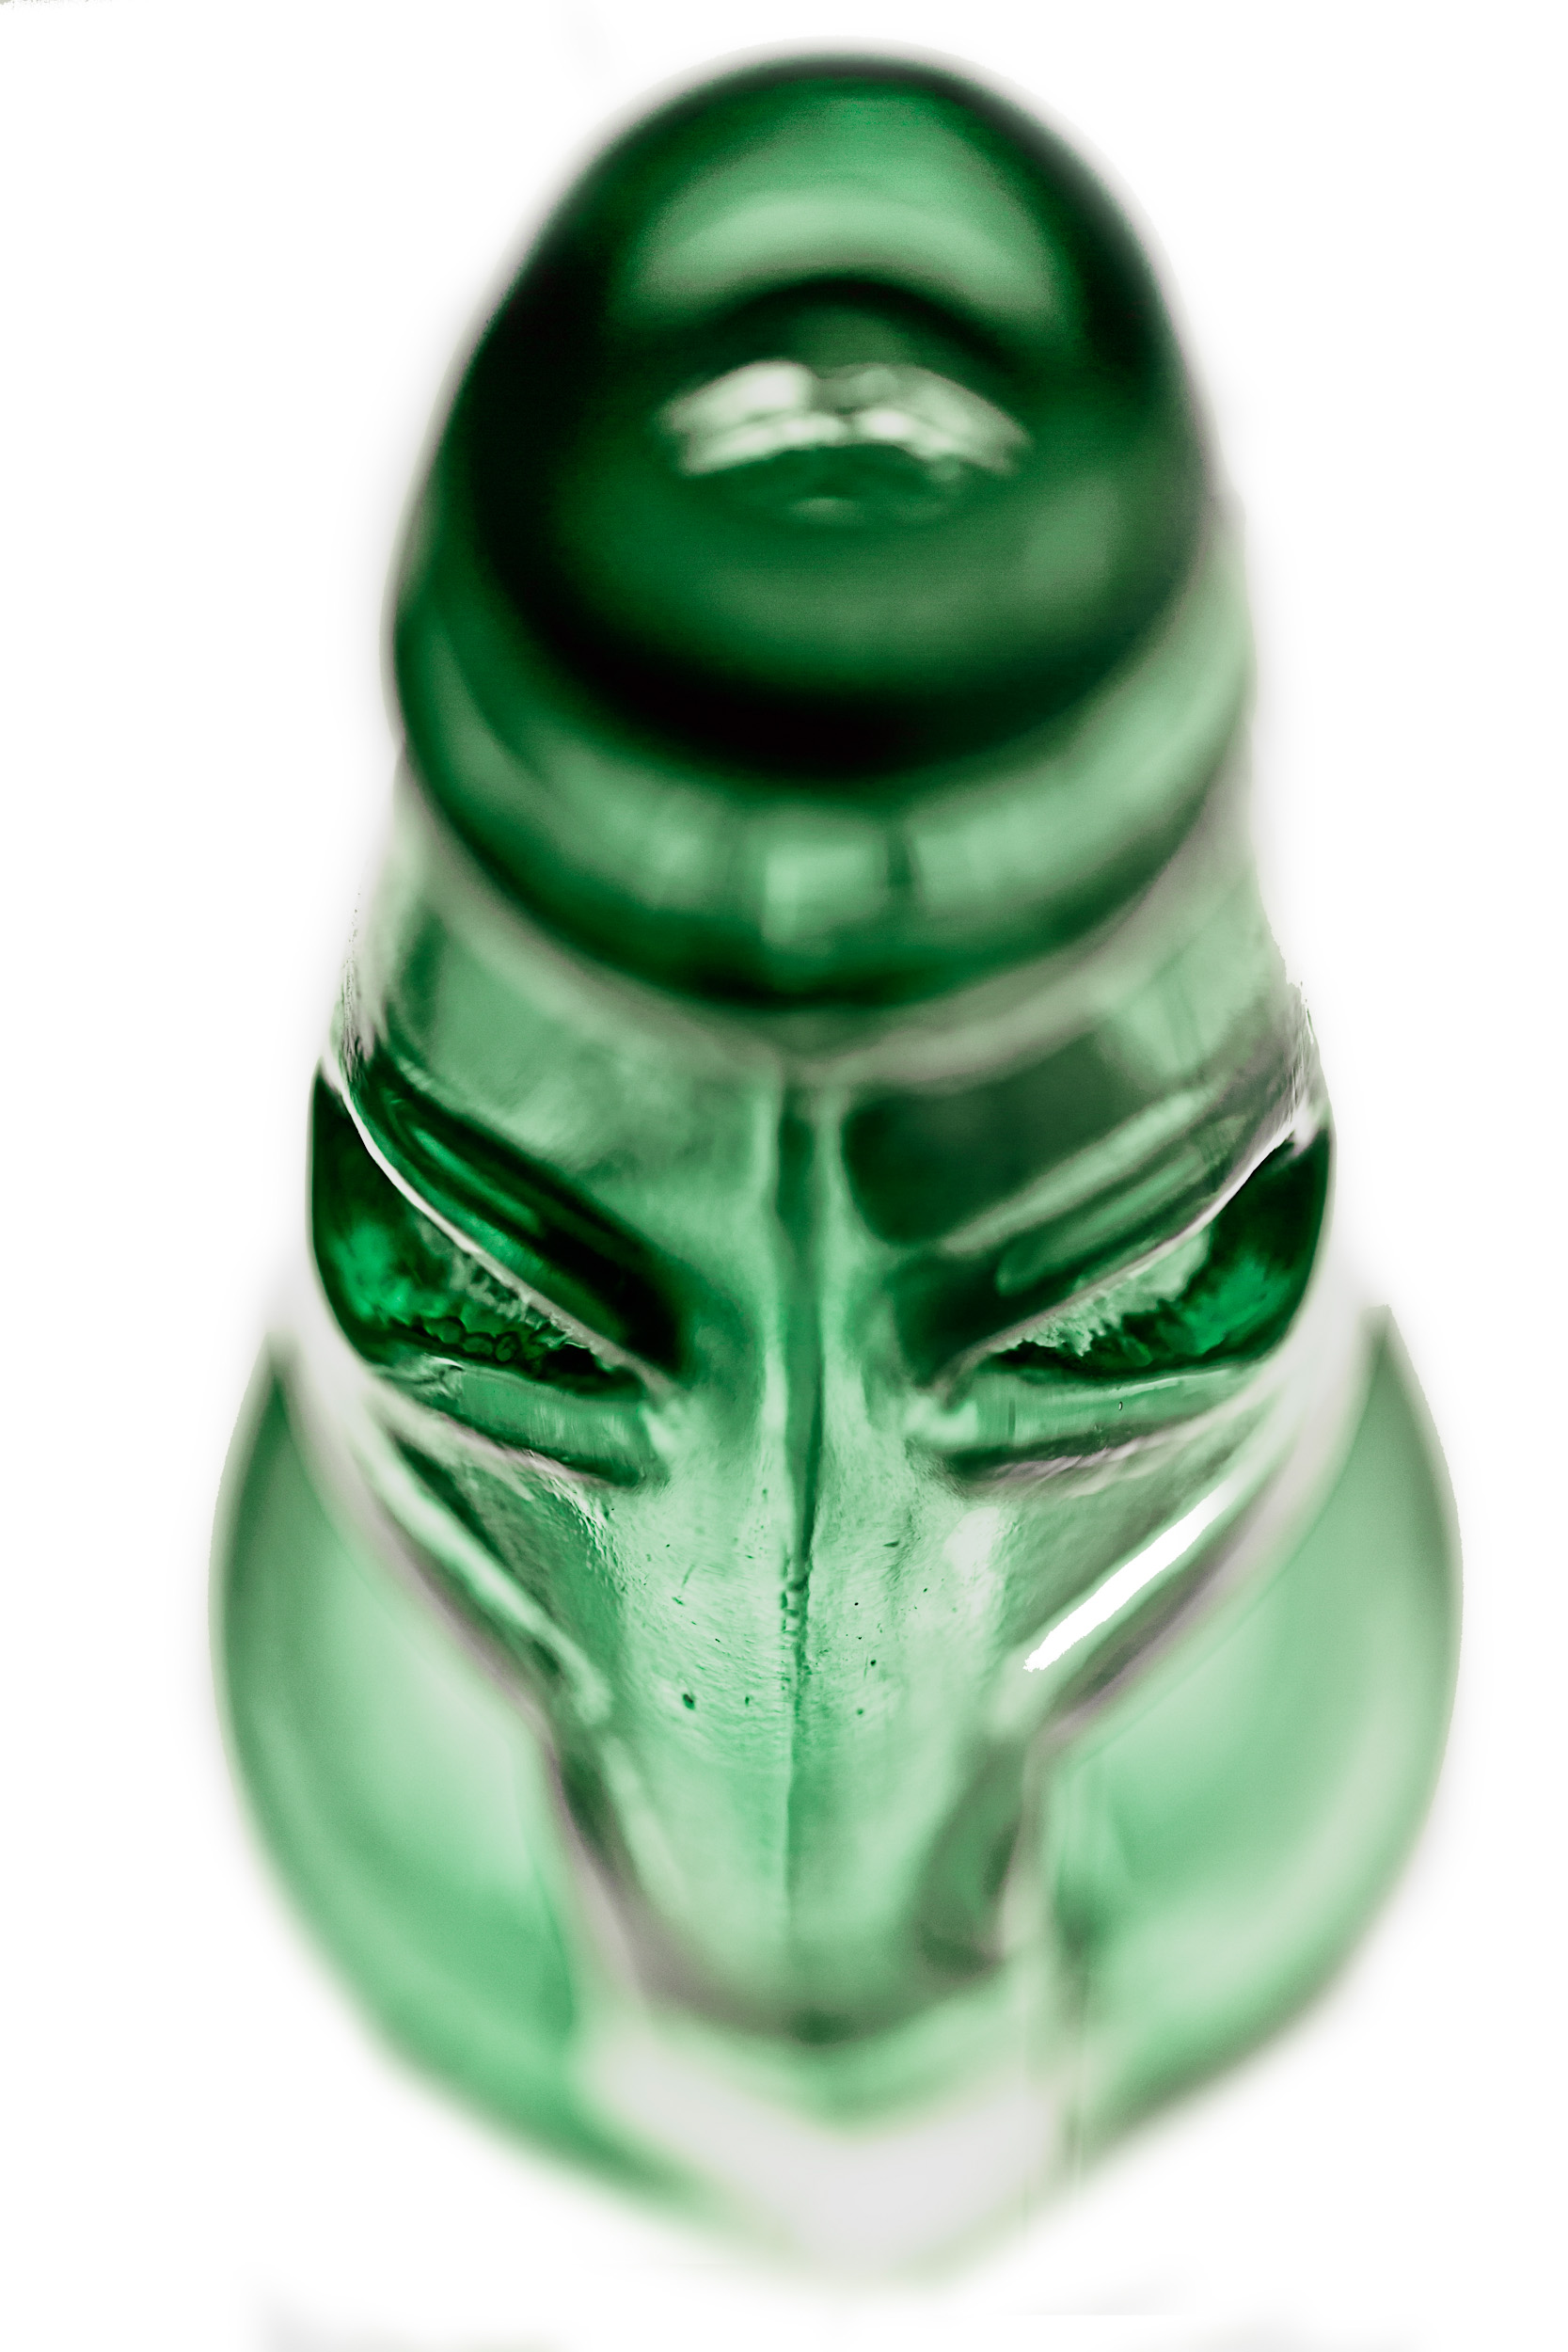 Sindhur_Photography_Perspectives_Product_Golisoda_Soda_30.JPG